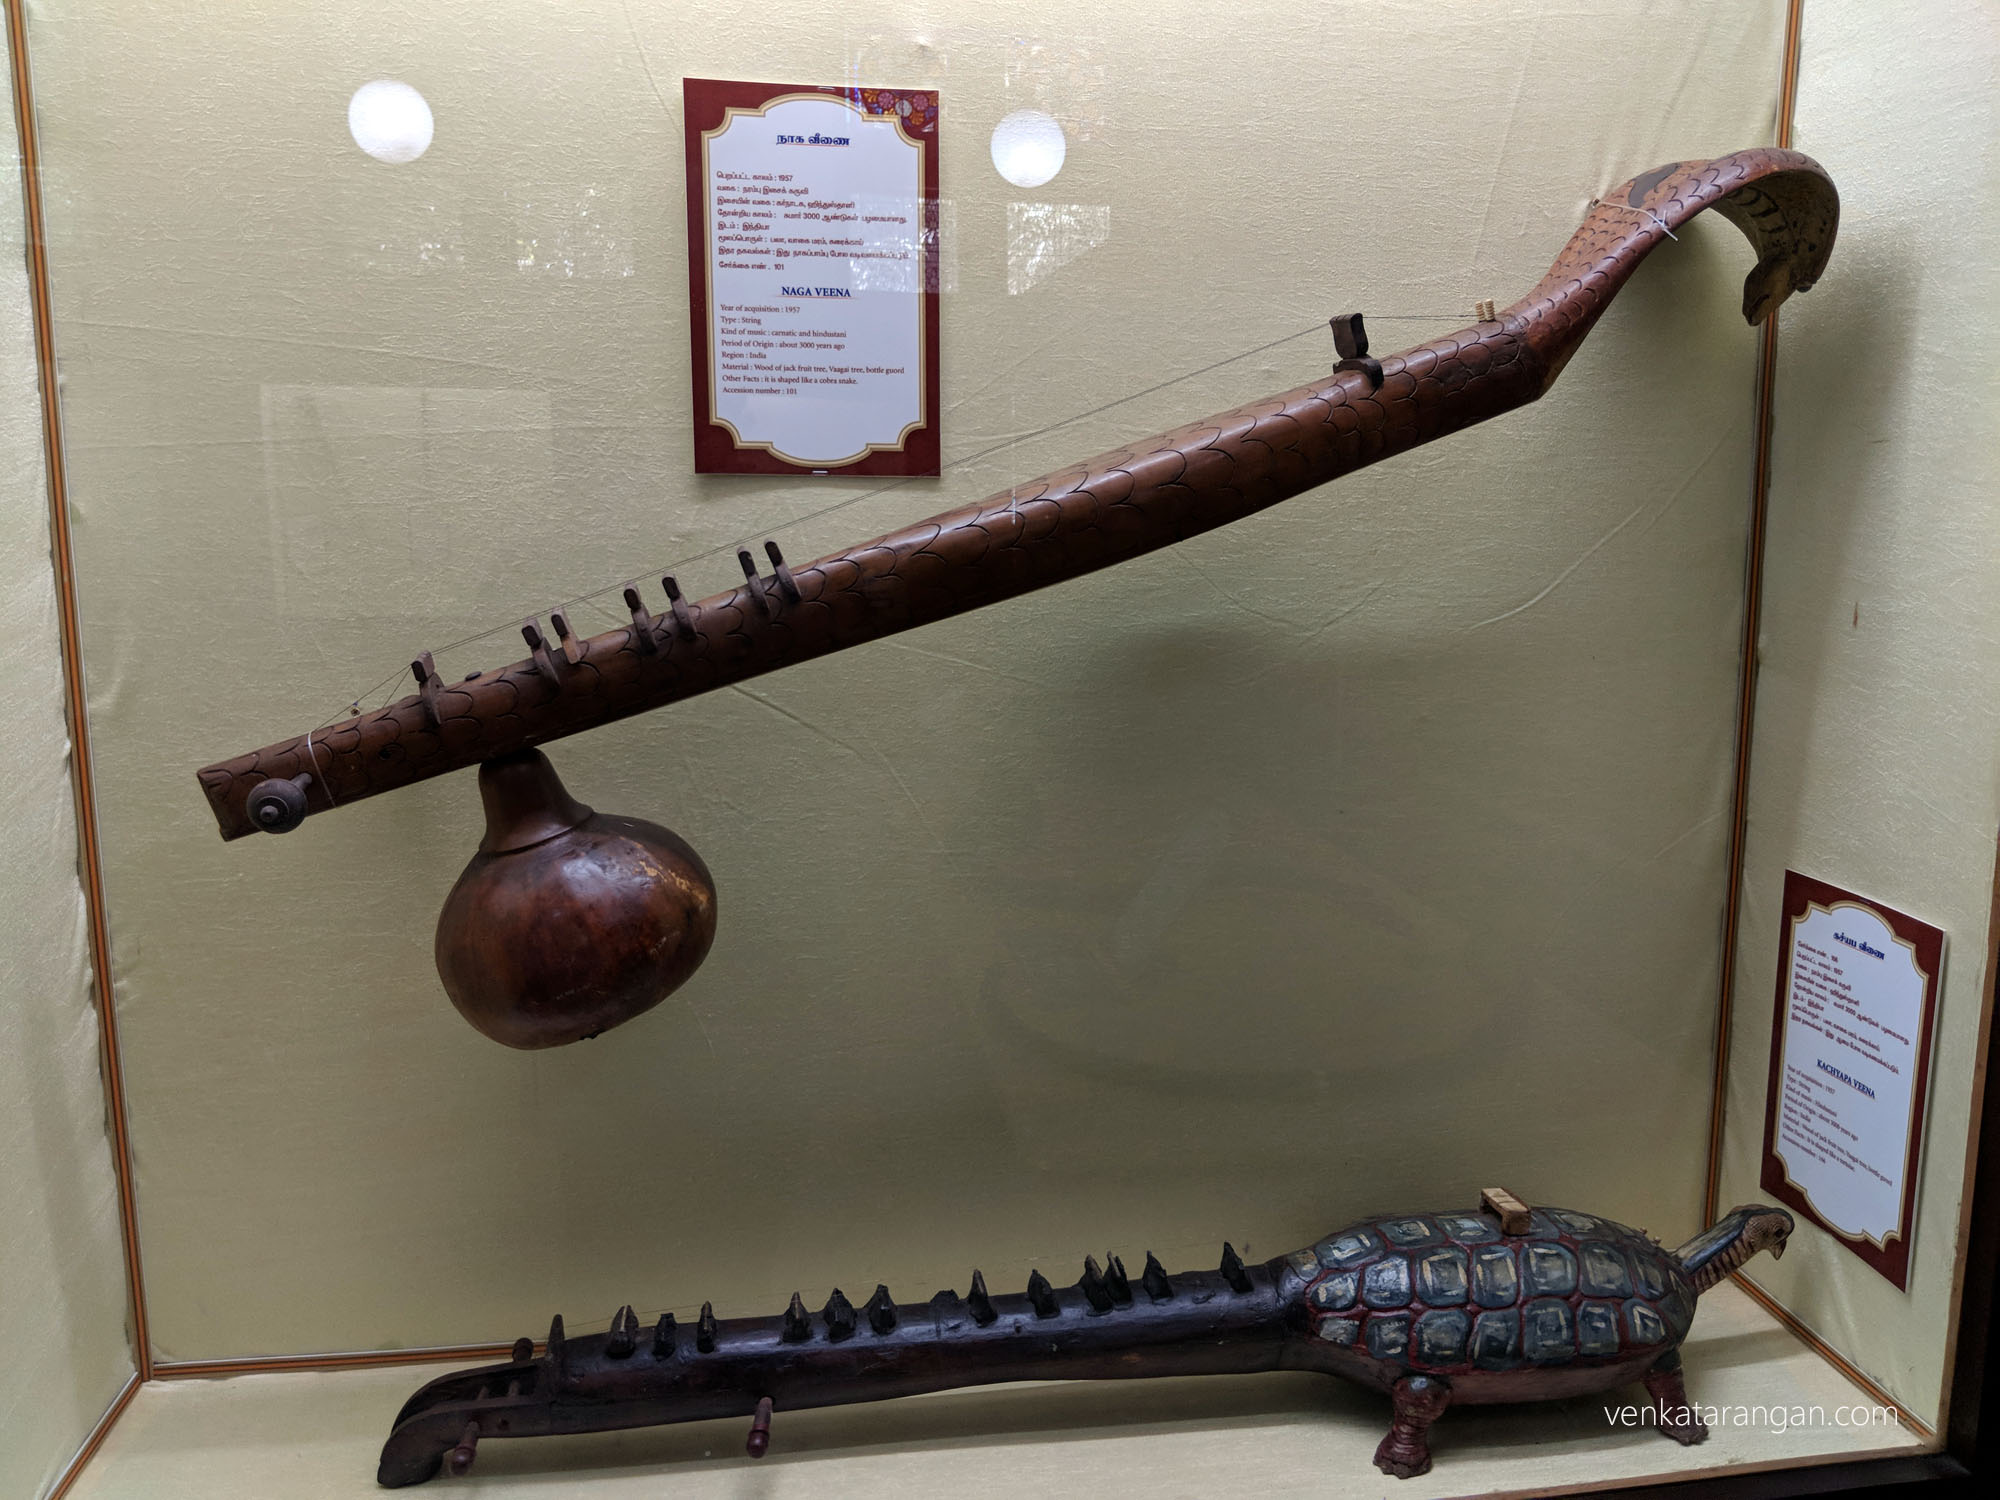 Top-Naga Veena (நாகை வீணை). The wood of jackfruit tree, Vaagai tree, bottle gourd tree.Shaped like a cobra snake. Bottom-Kachyapa Veena (கச்யப வீணை). Shaped like a tortoise.